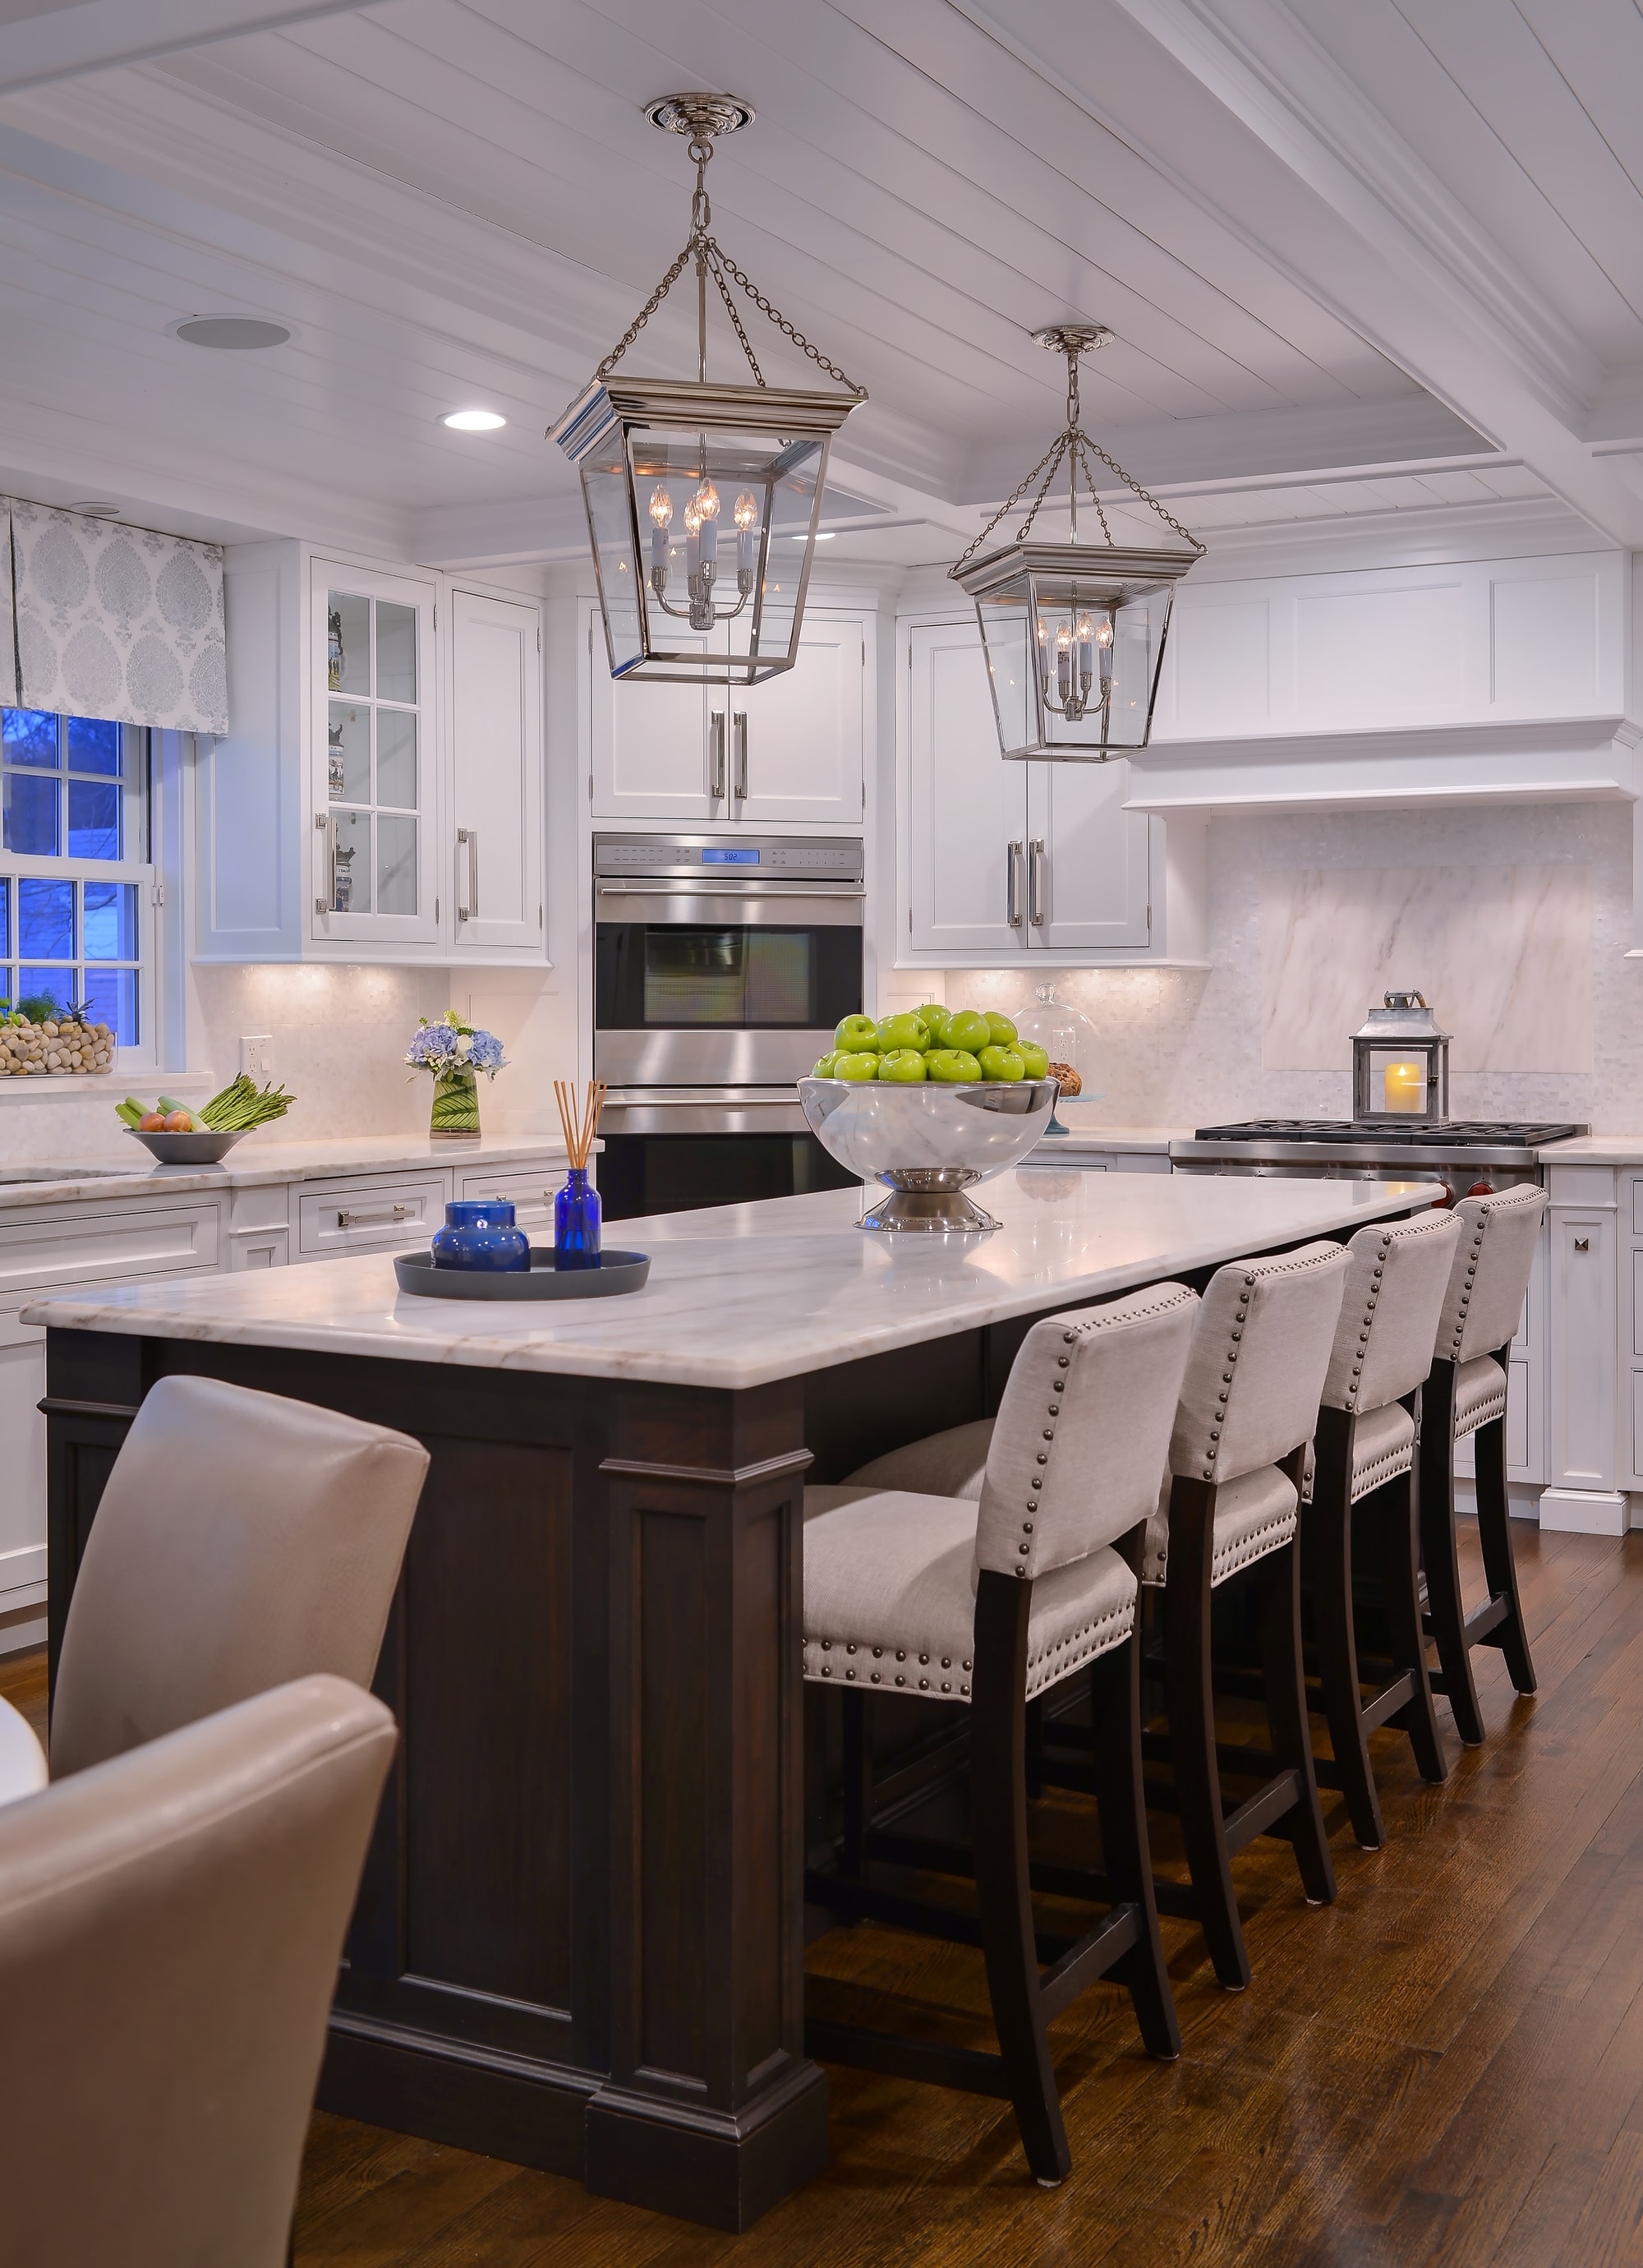 Transitional style kitchen with kitchen island and four counter stools